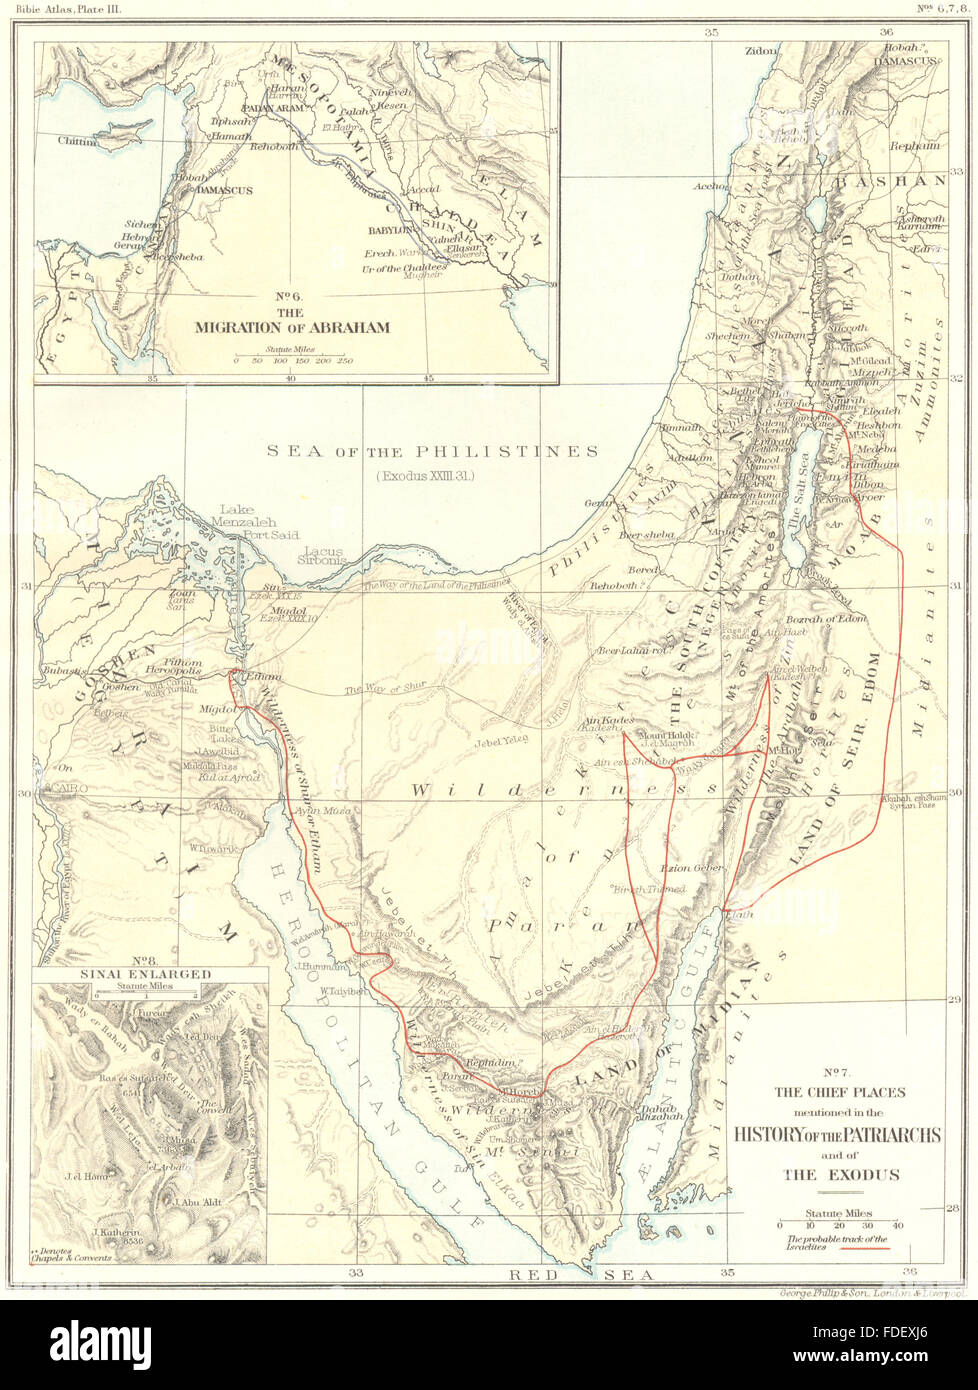 HOLY LAND: Migration Abraham places mentioned Patriarch Exodus Sinai, 1900 map - Stock Image